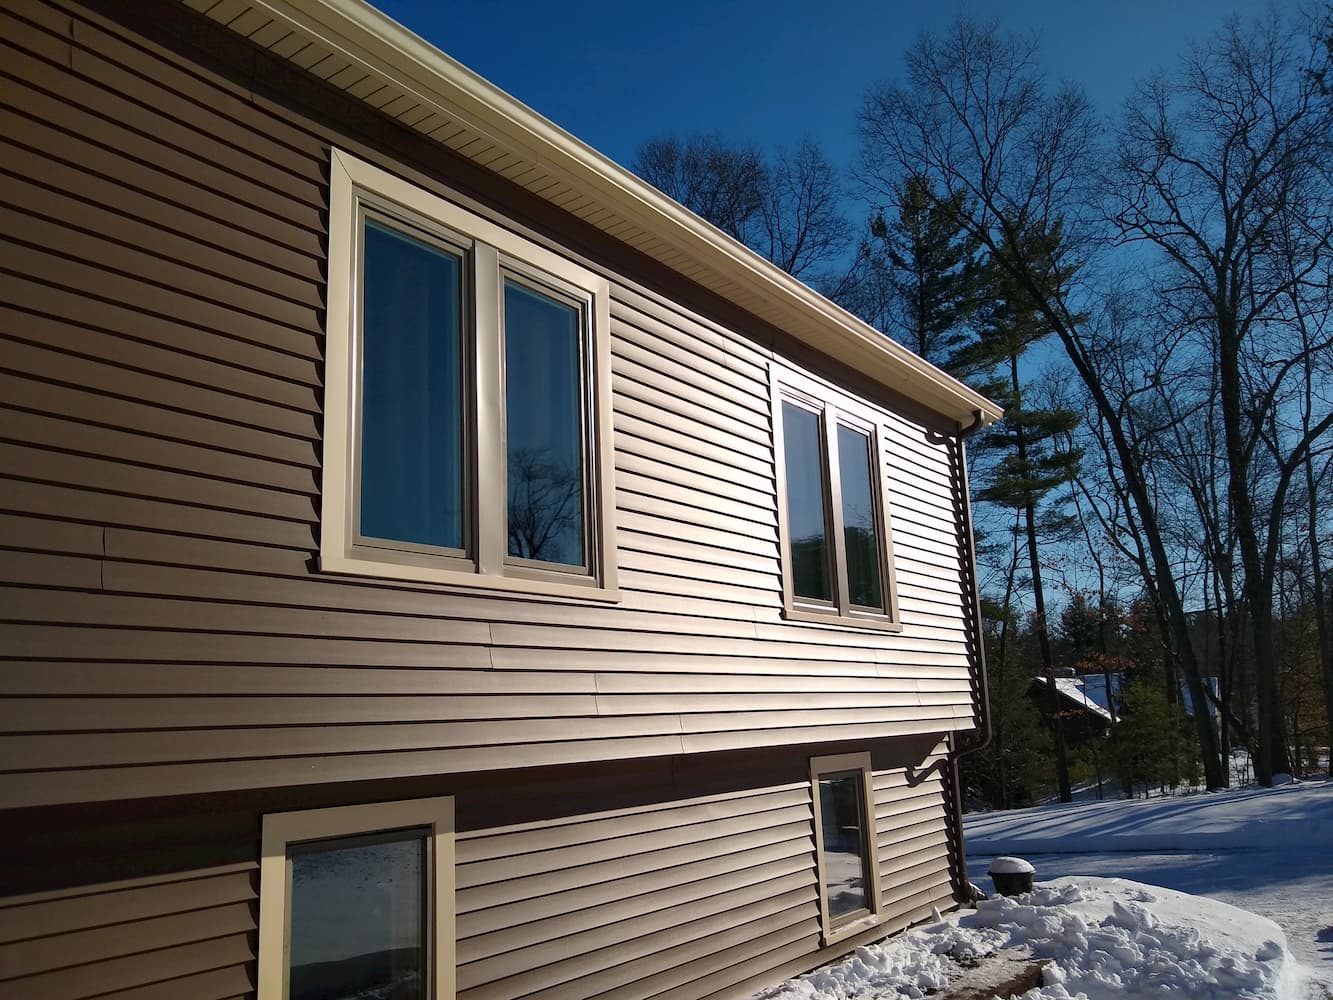 After view of new Pella casement windows in Agawam home